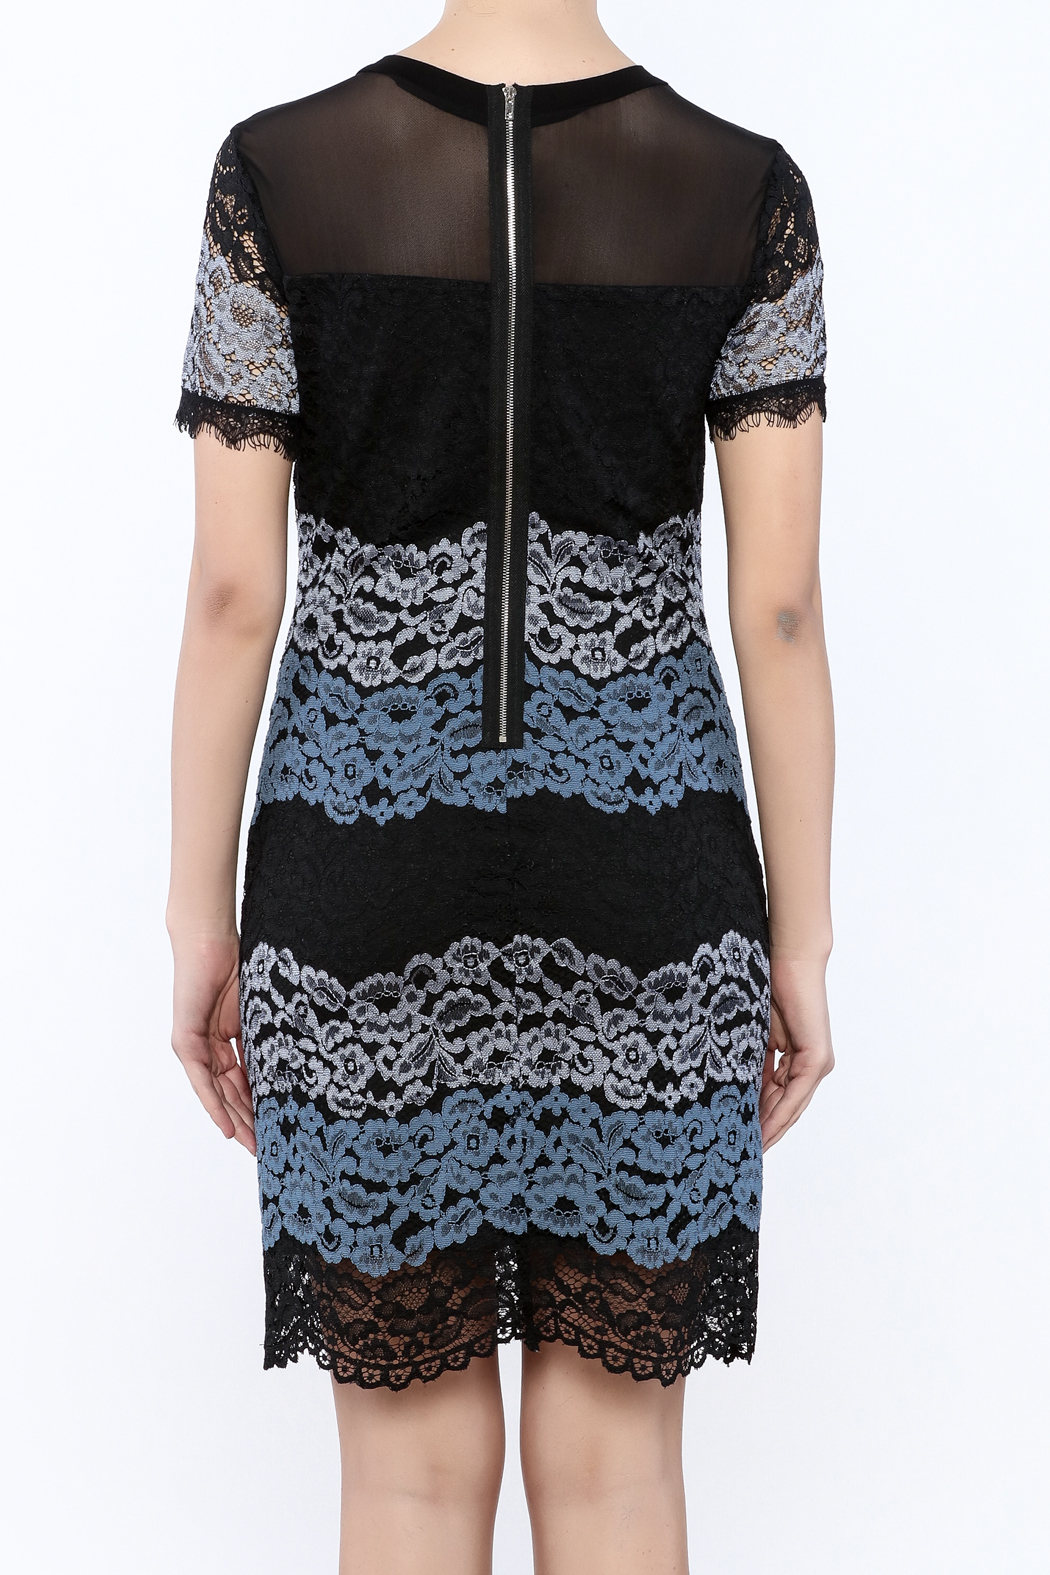 Kut from the Kloth Lace Color Block Dress - Back Cropped Image